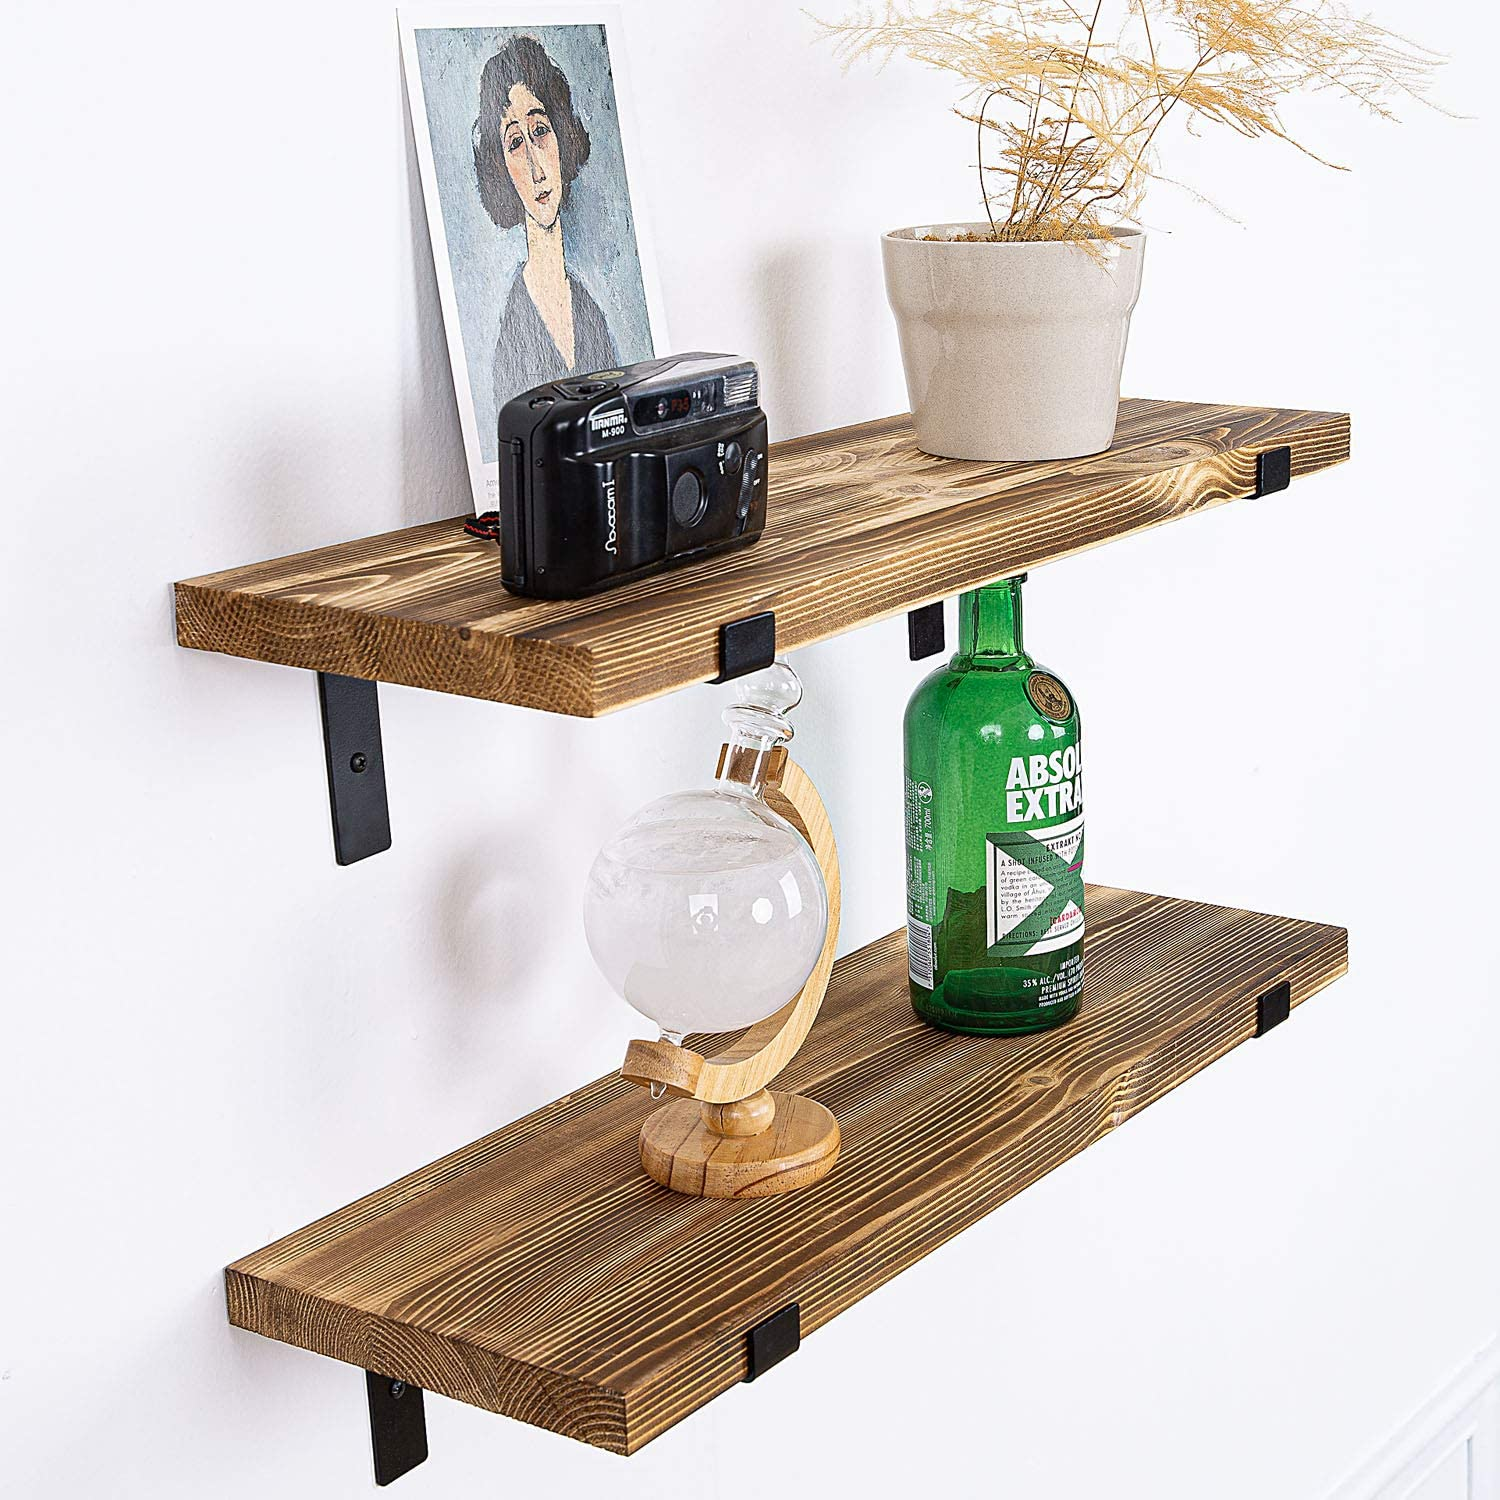 AZSKY Wall Mounted Floating Shelves Set of 2, Small Bookshelf Unit for Living Room, Office, and Bedroom, Rustic Wood Wall Decor with Metal Floating Shelf Bracket 24IN